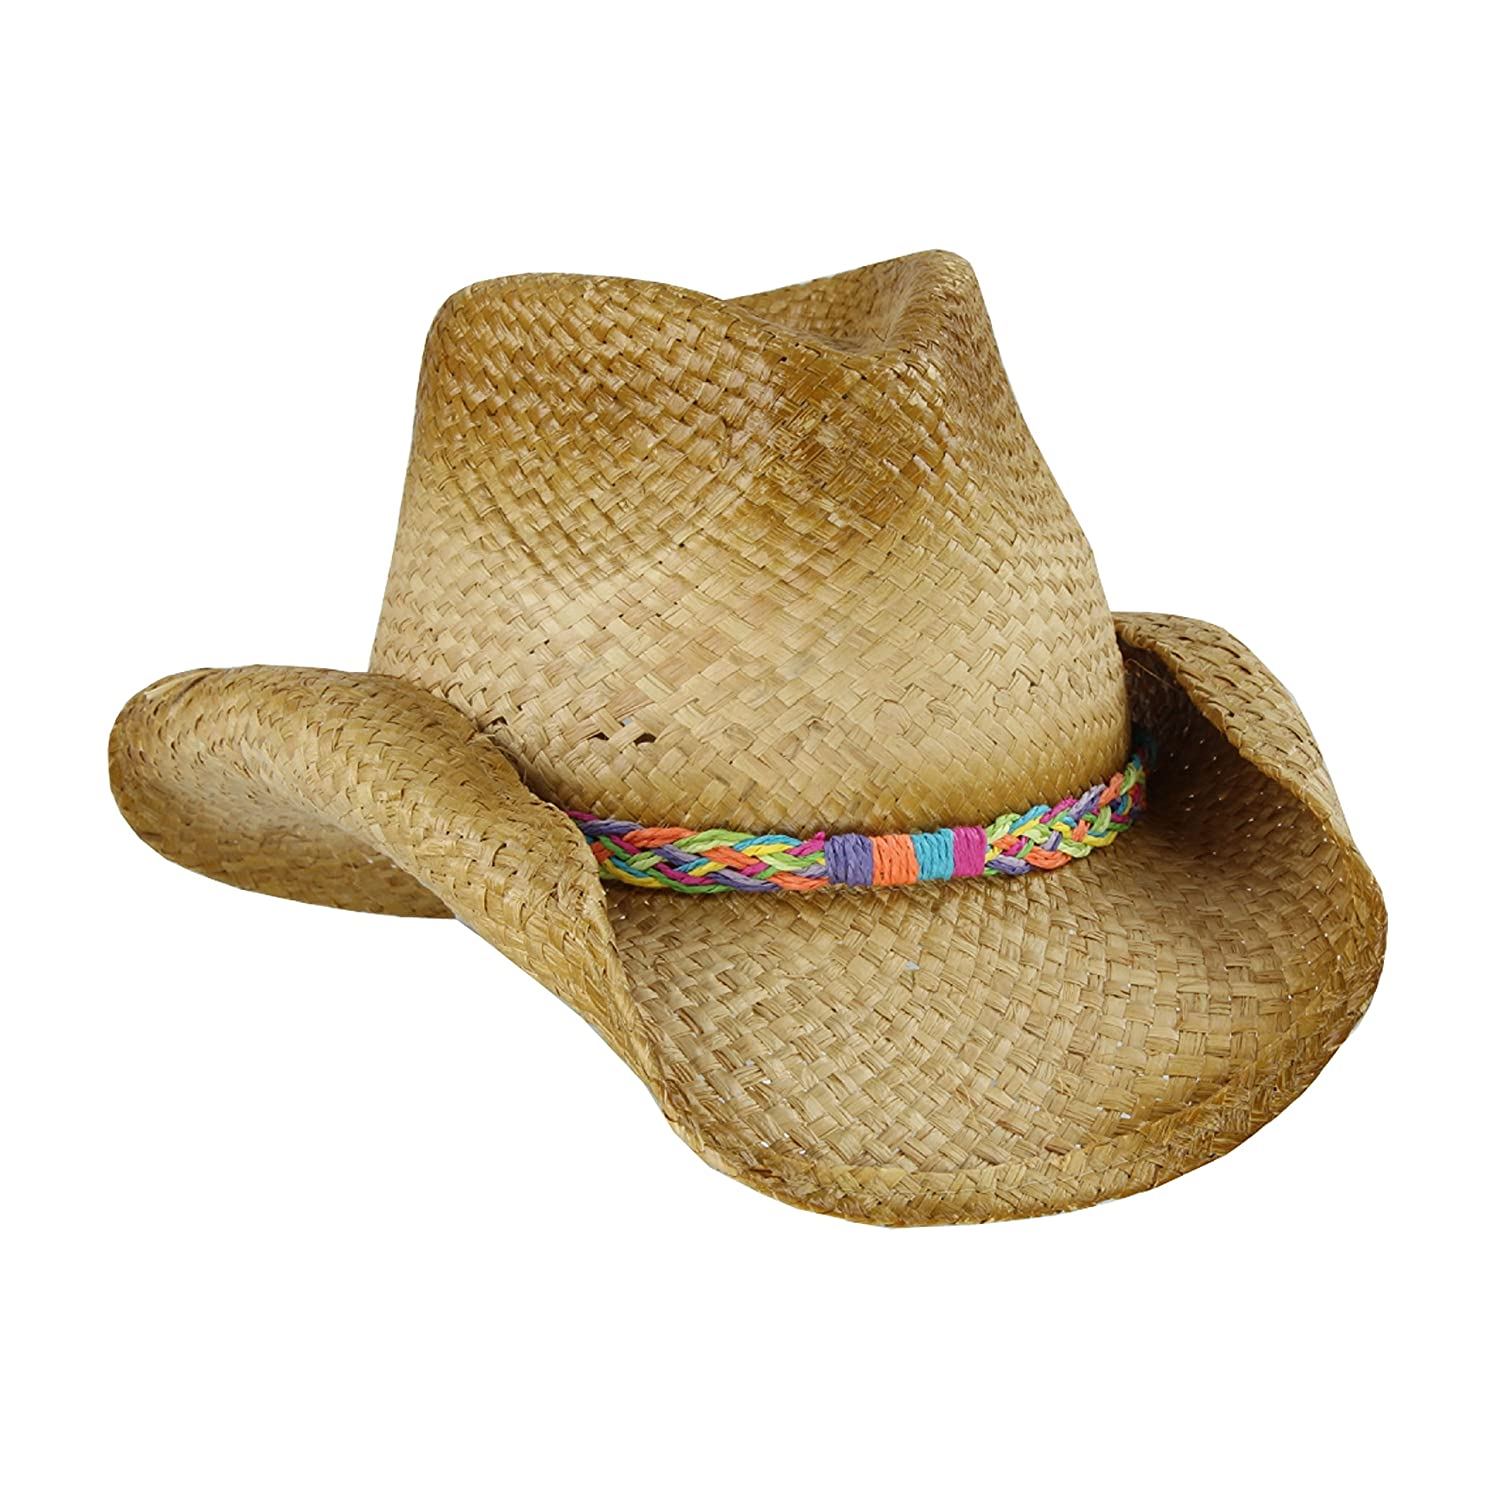 Straw Cowboy Sun Hat, Rainbow Braided Trim, Shapeable Brim, UPF 50 UV Block TJED093016